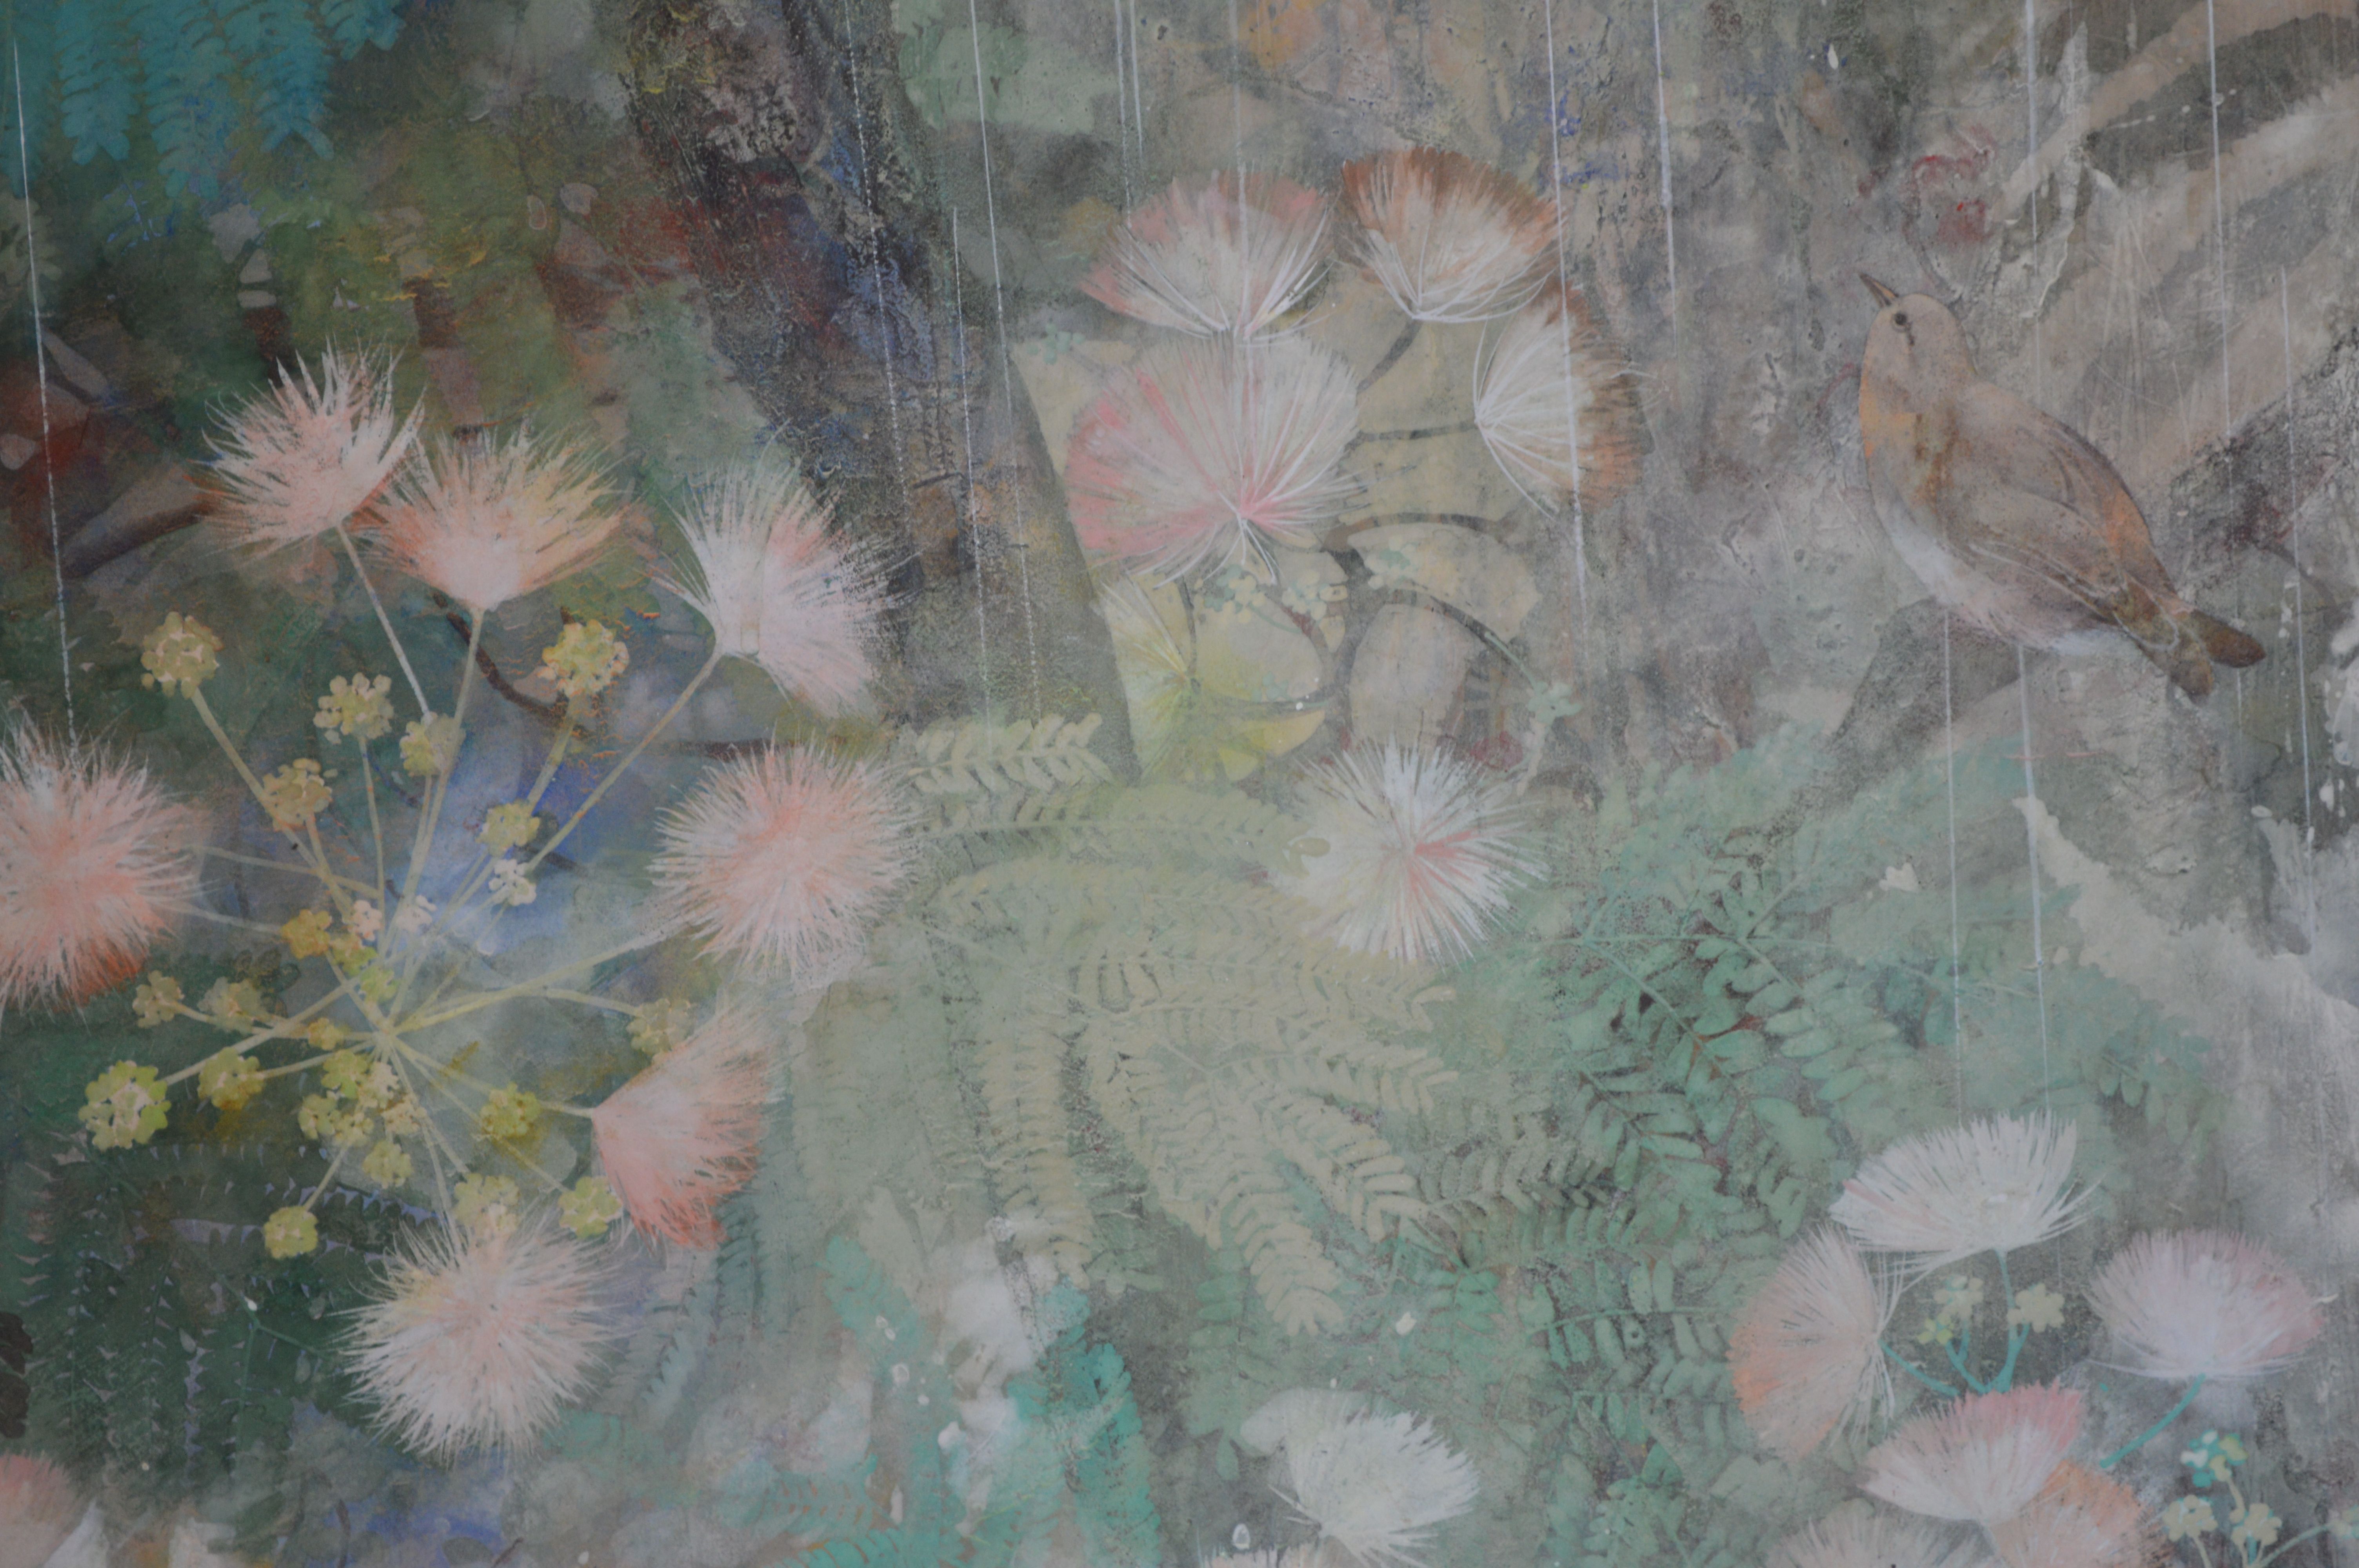 Coup de foudre,Chen Yiching,Contemporary painting, detail 2